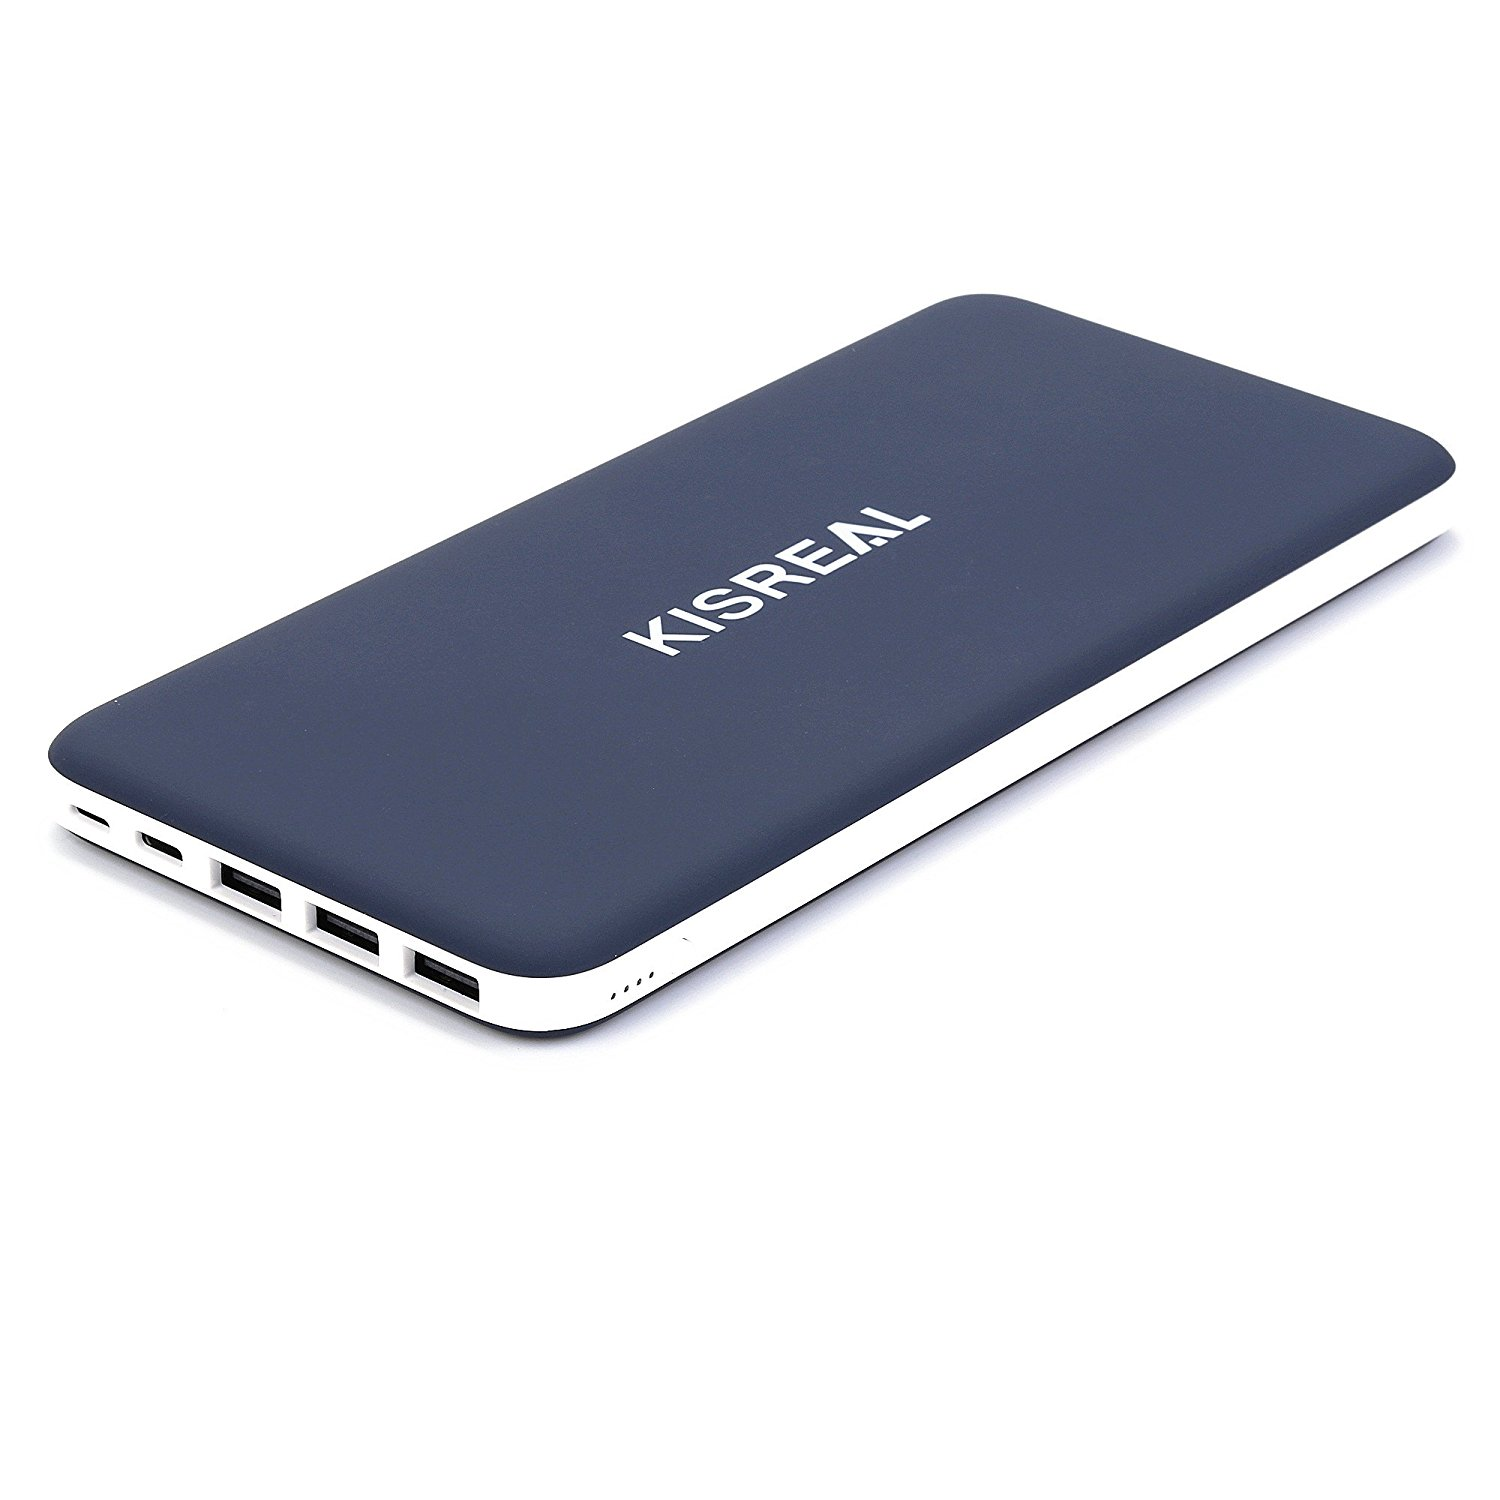 Kisreal 2600m AH powerbank